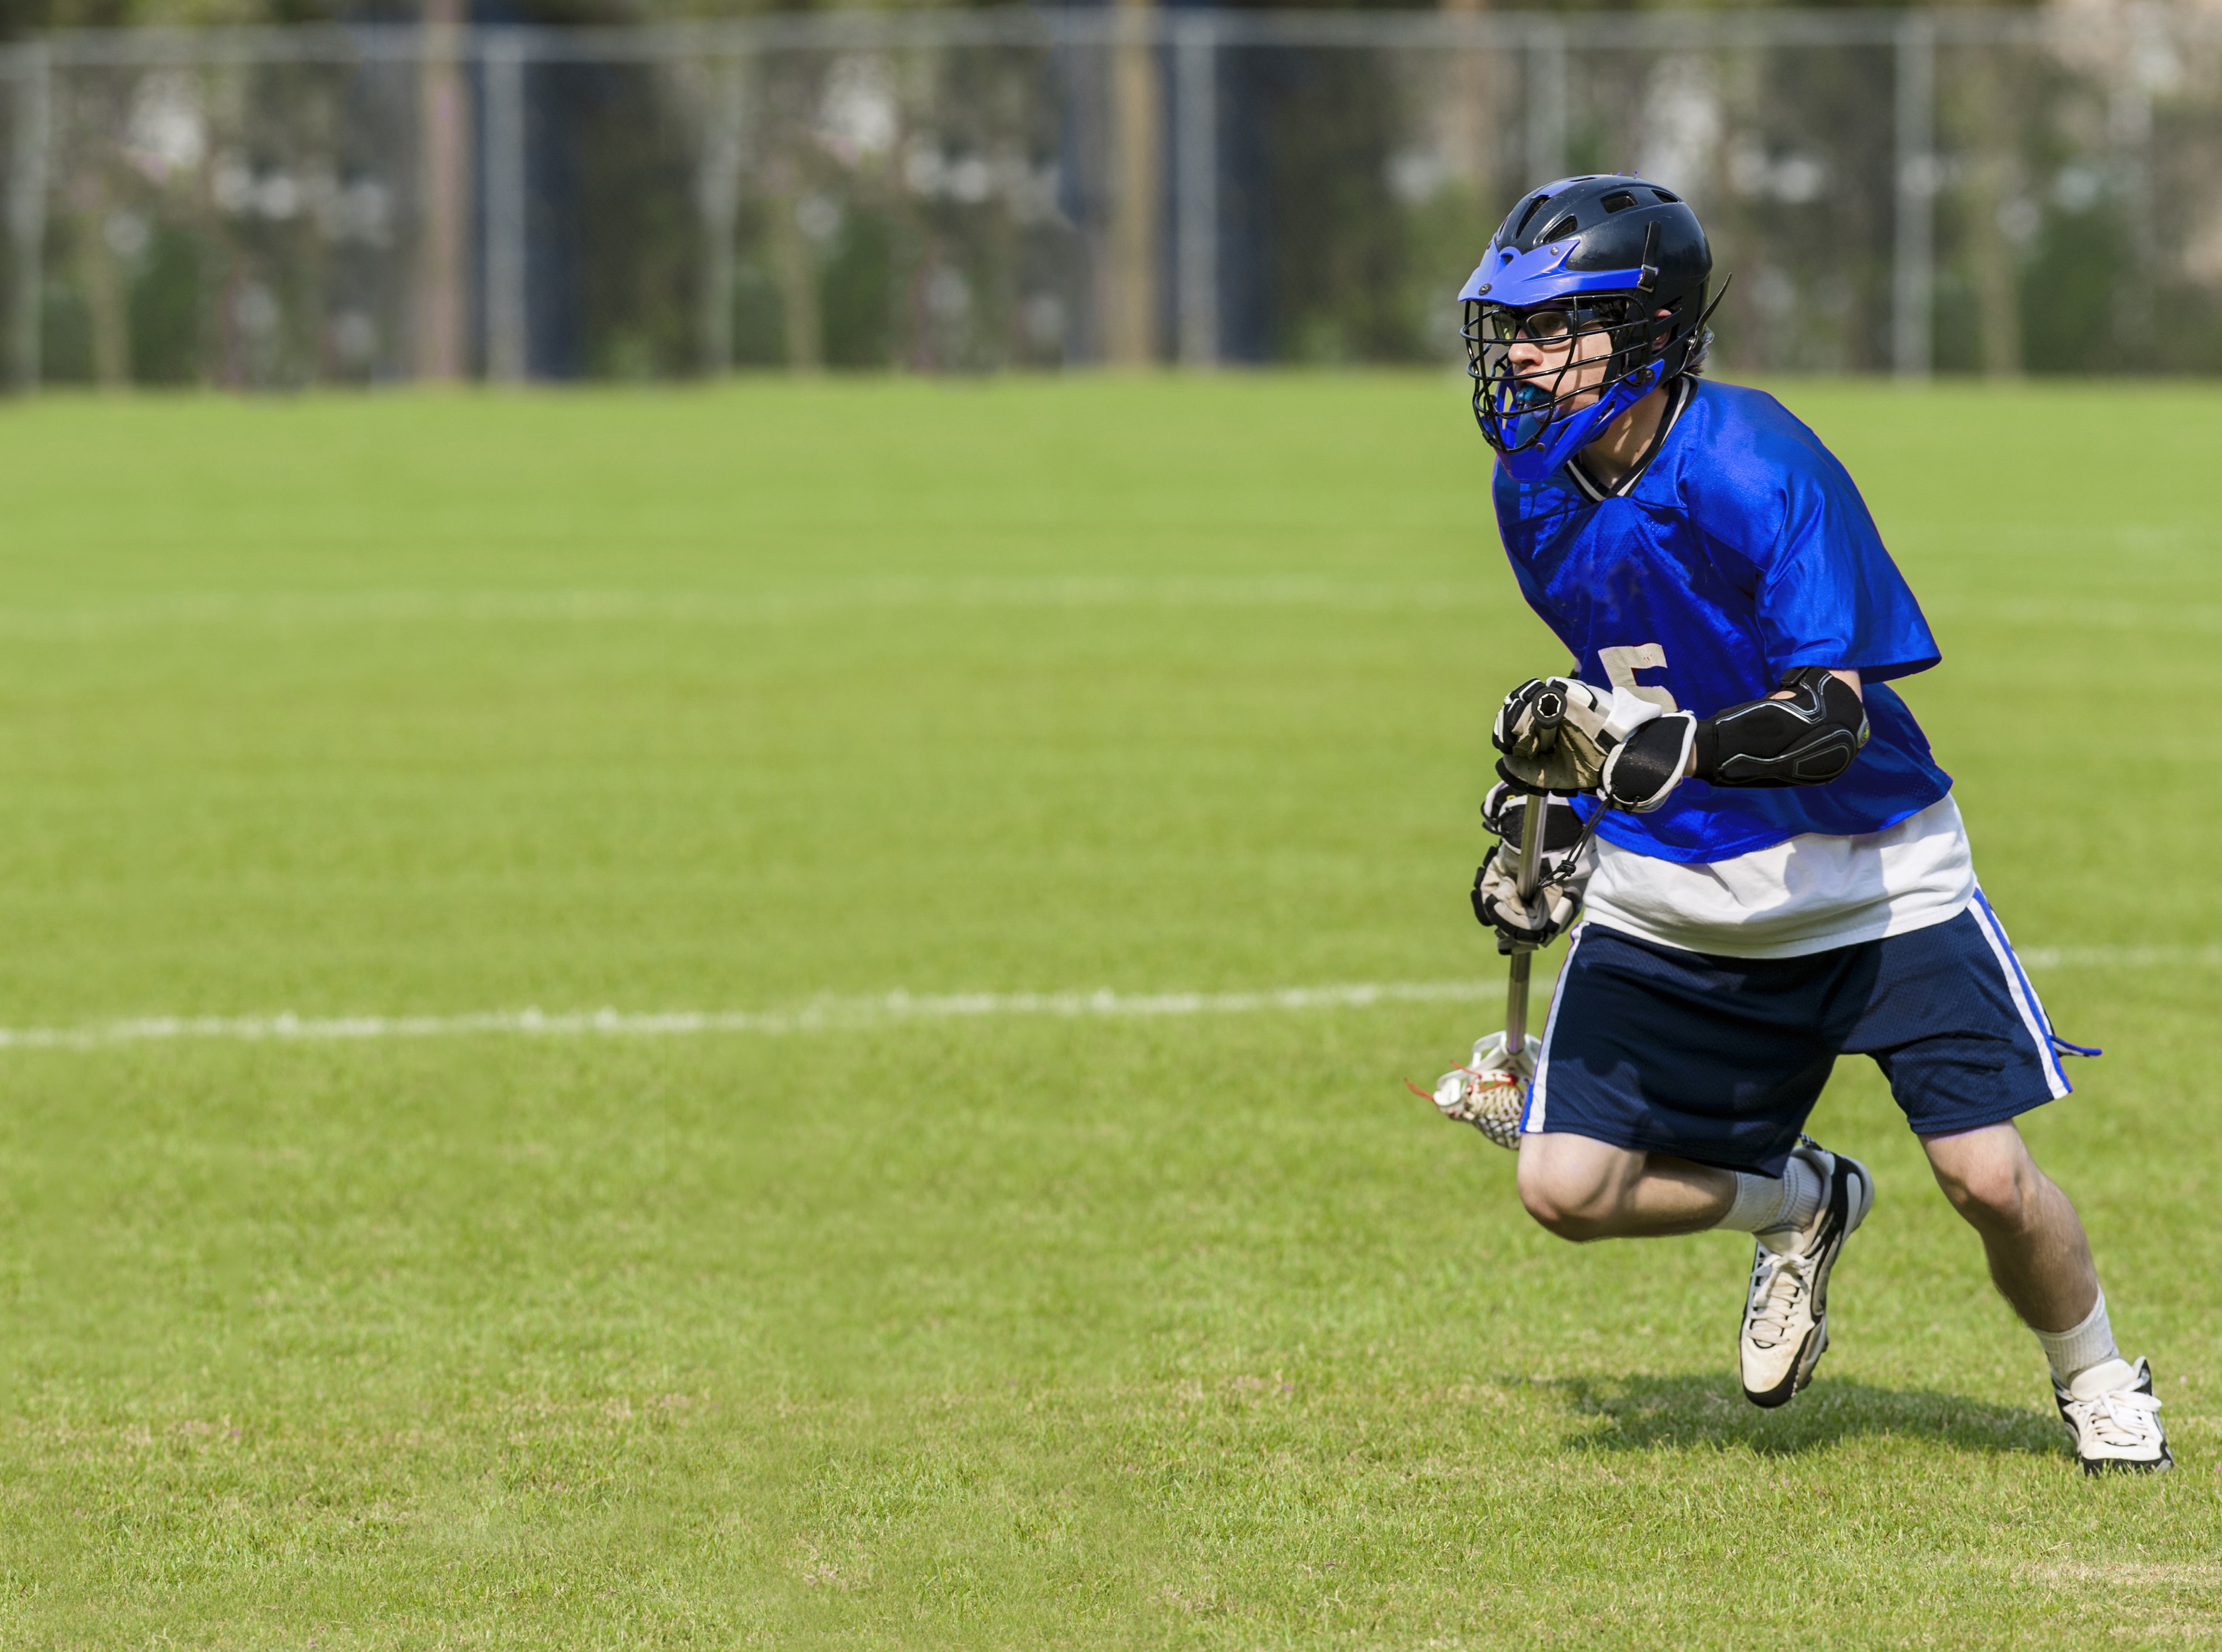 Defender - Which position should I play in lacrosse?